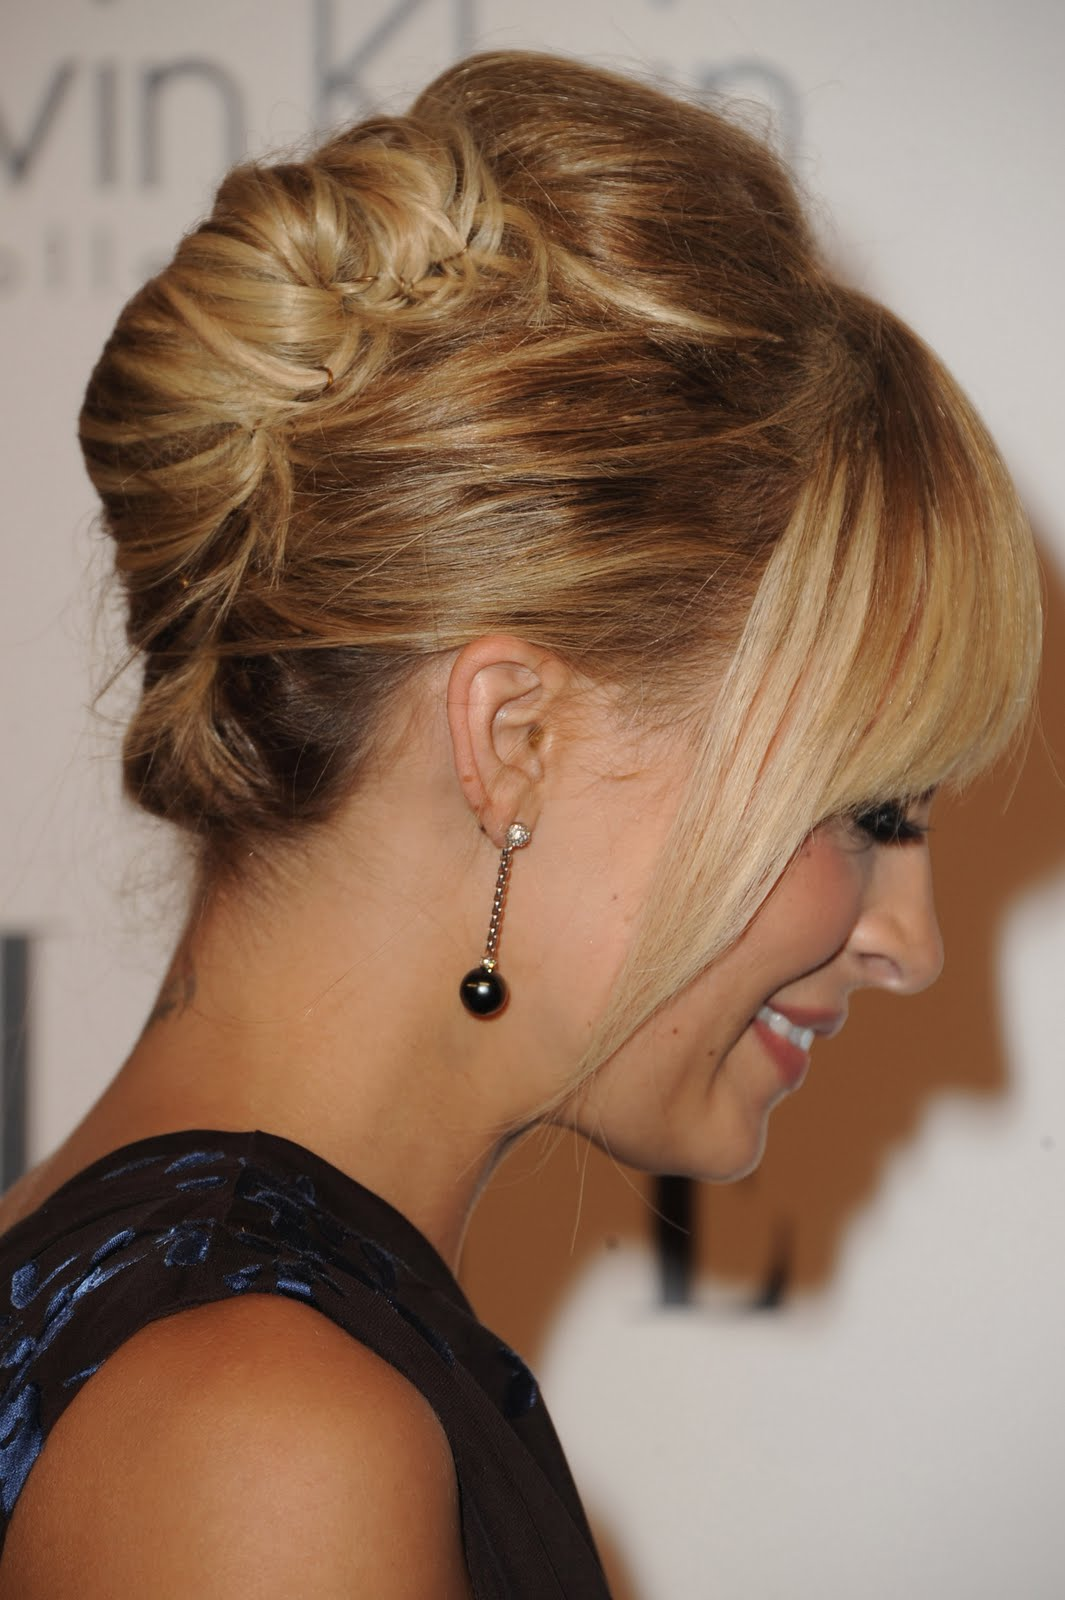 Nicole Richie Sports Top Knot with Side-Swept Bangs